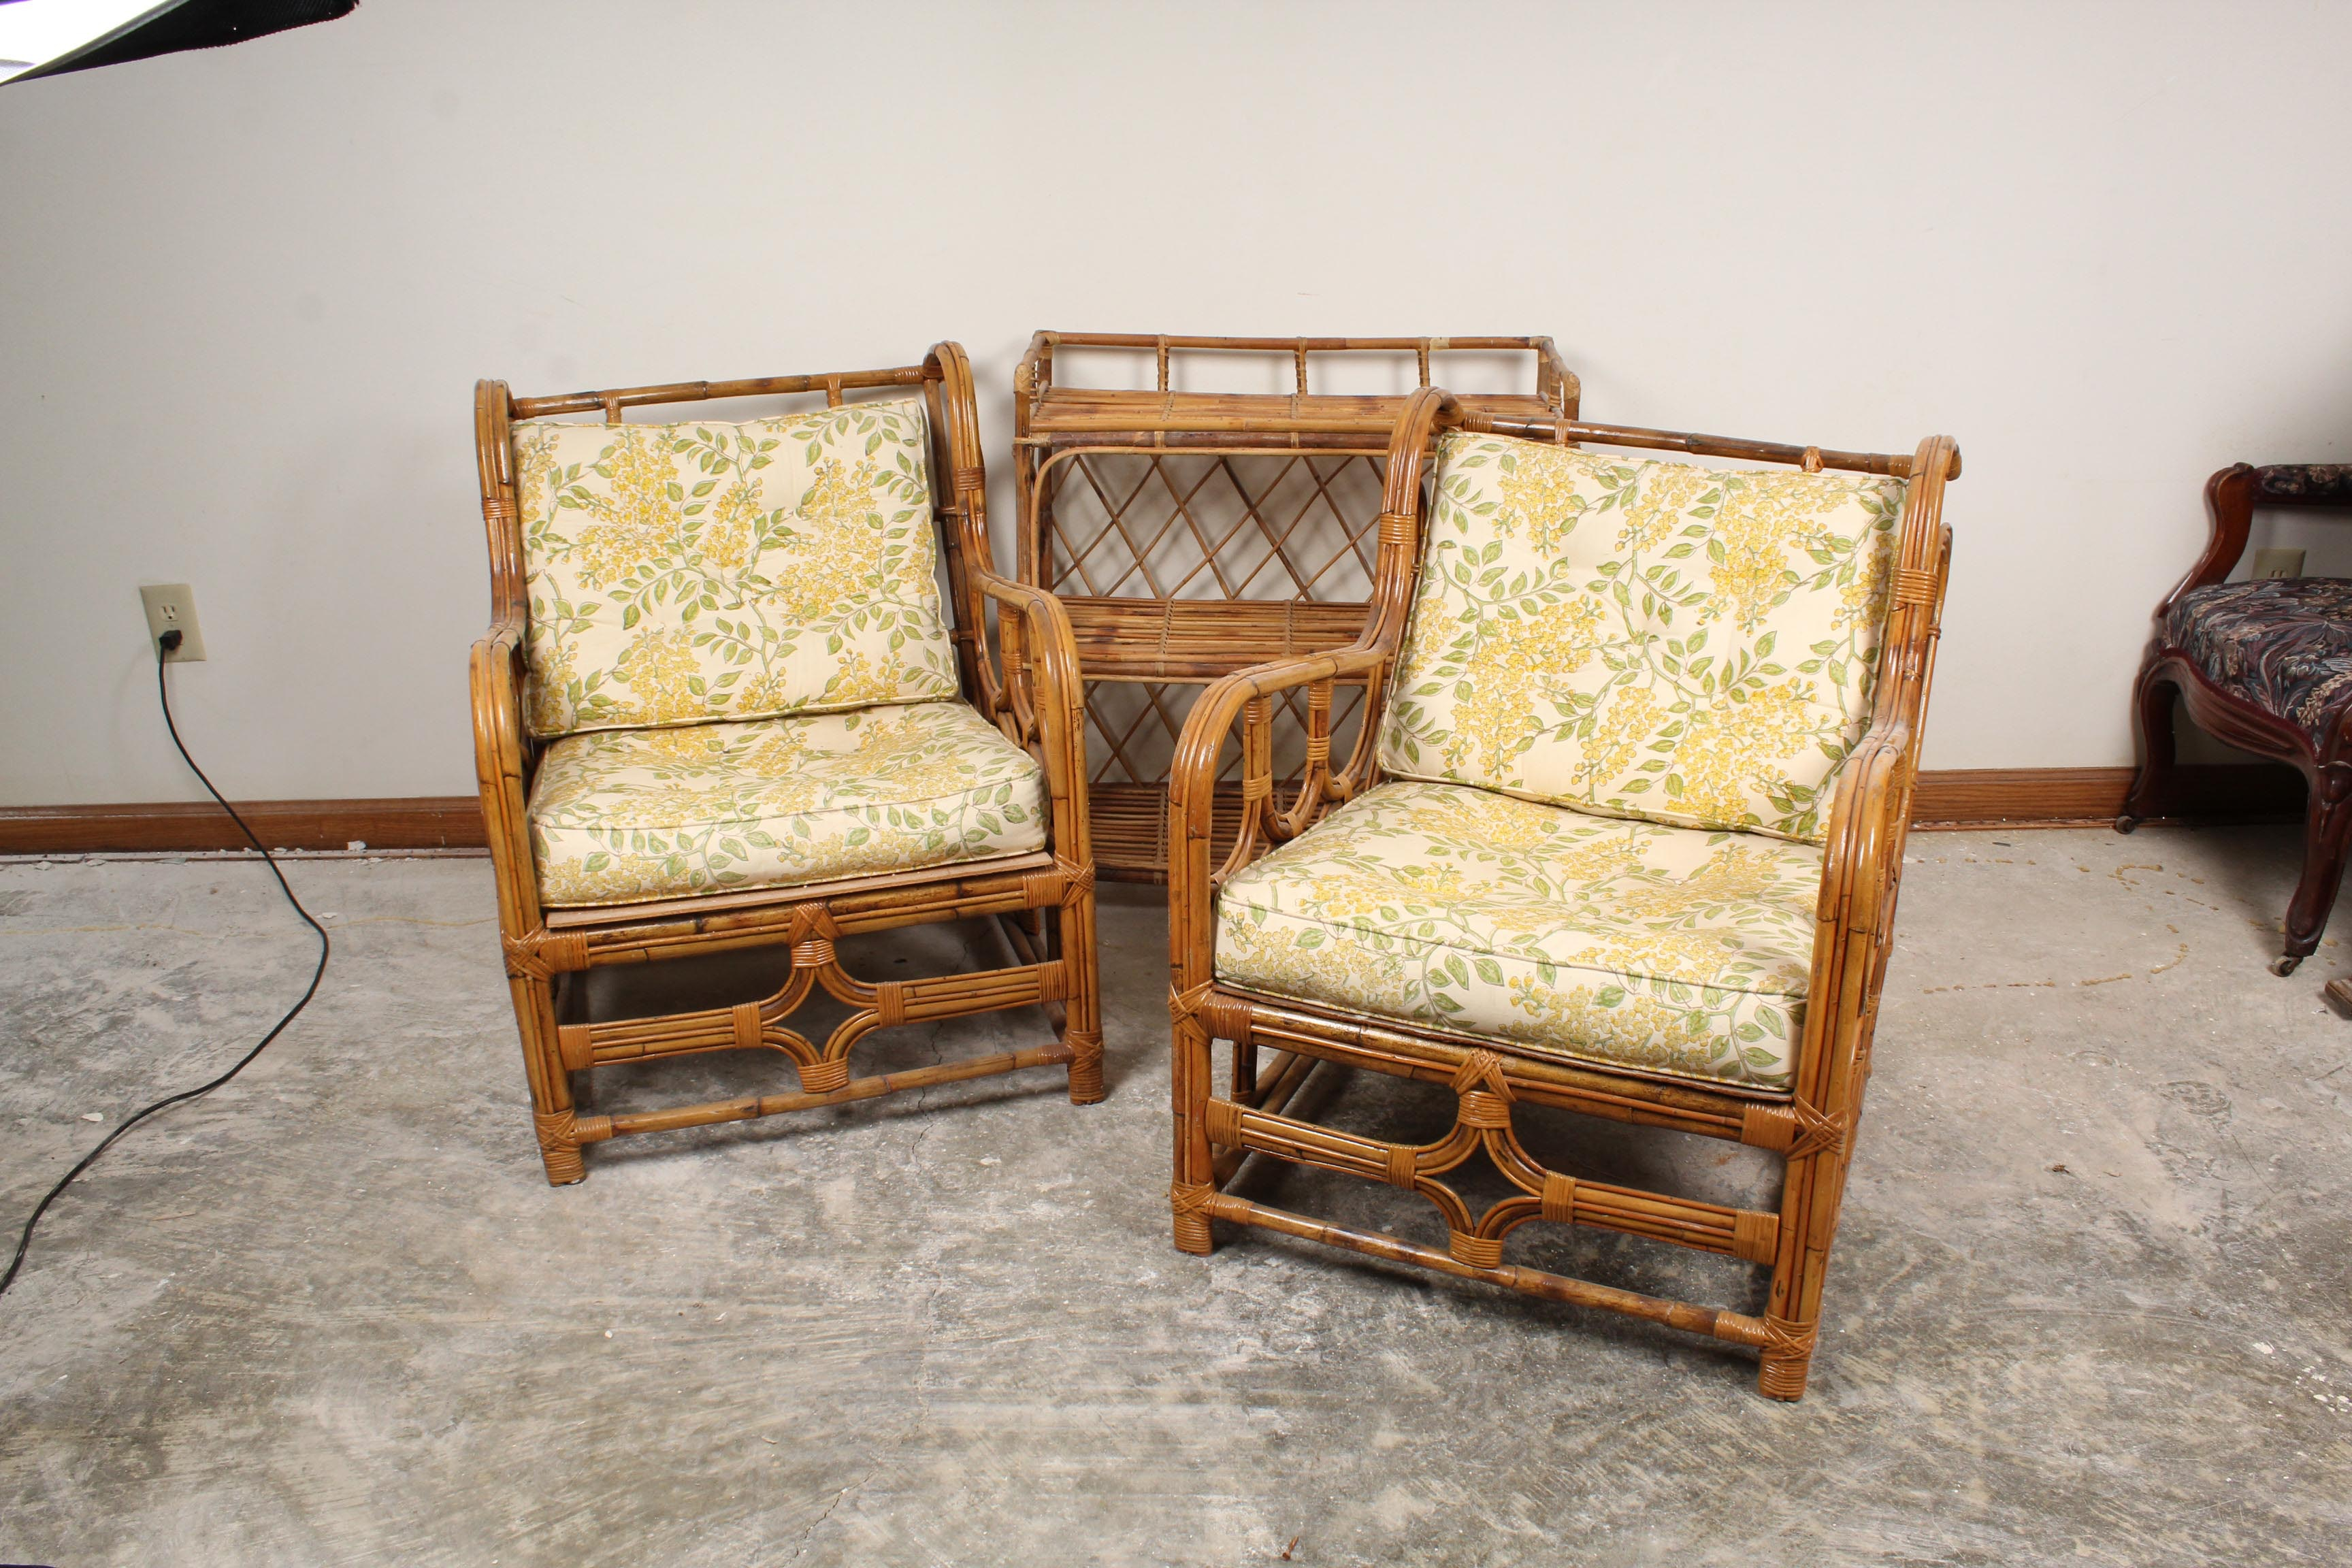 Rattan Frame Chairs and Side Table